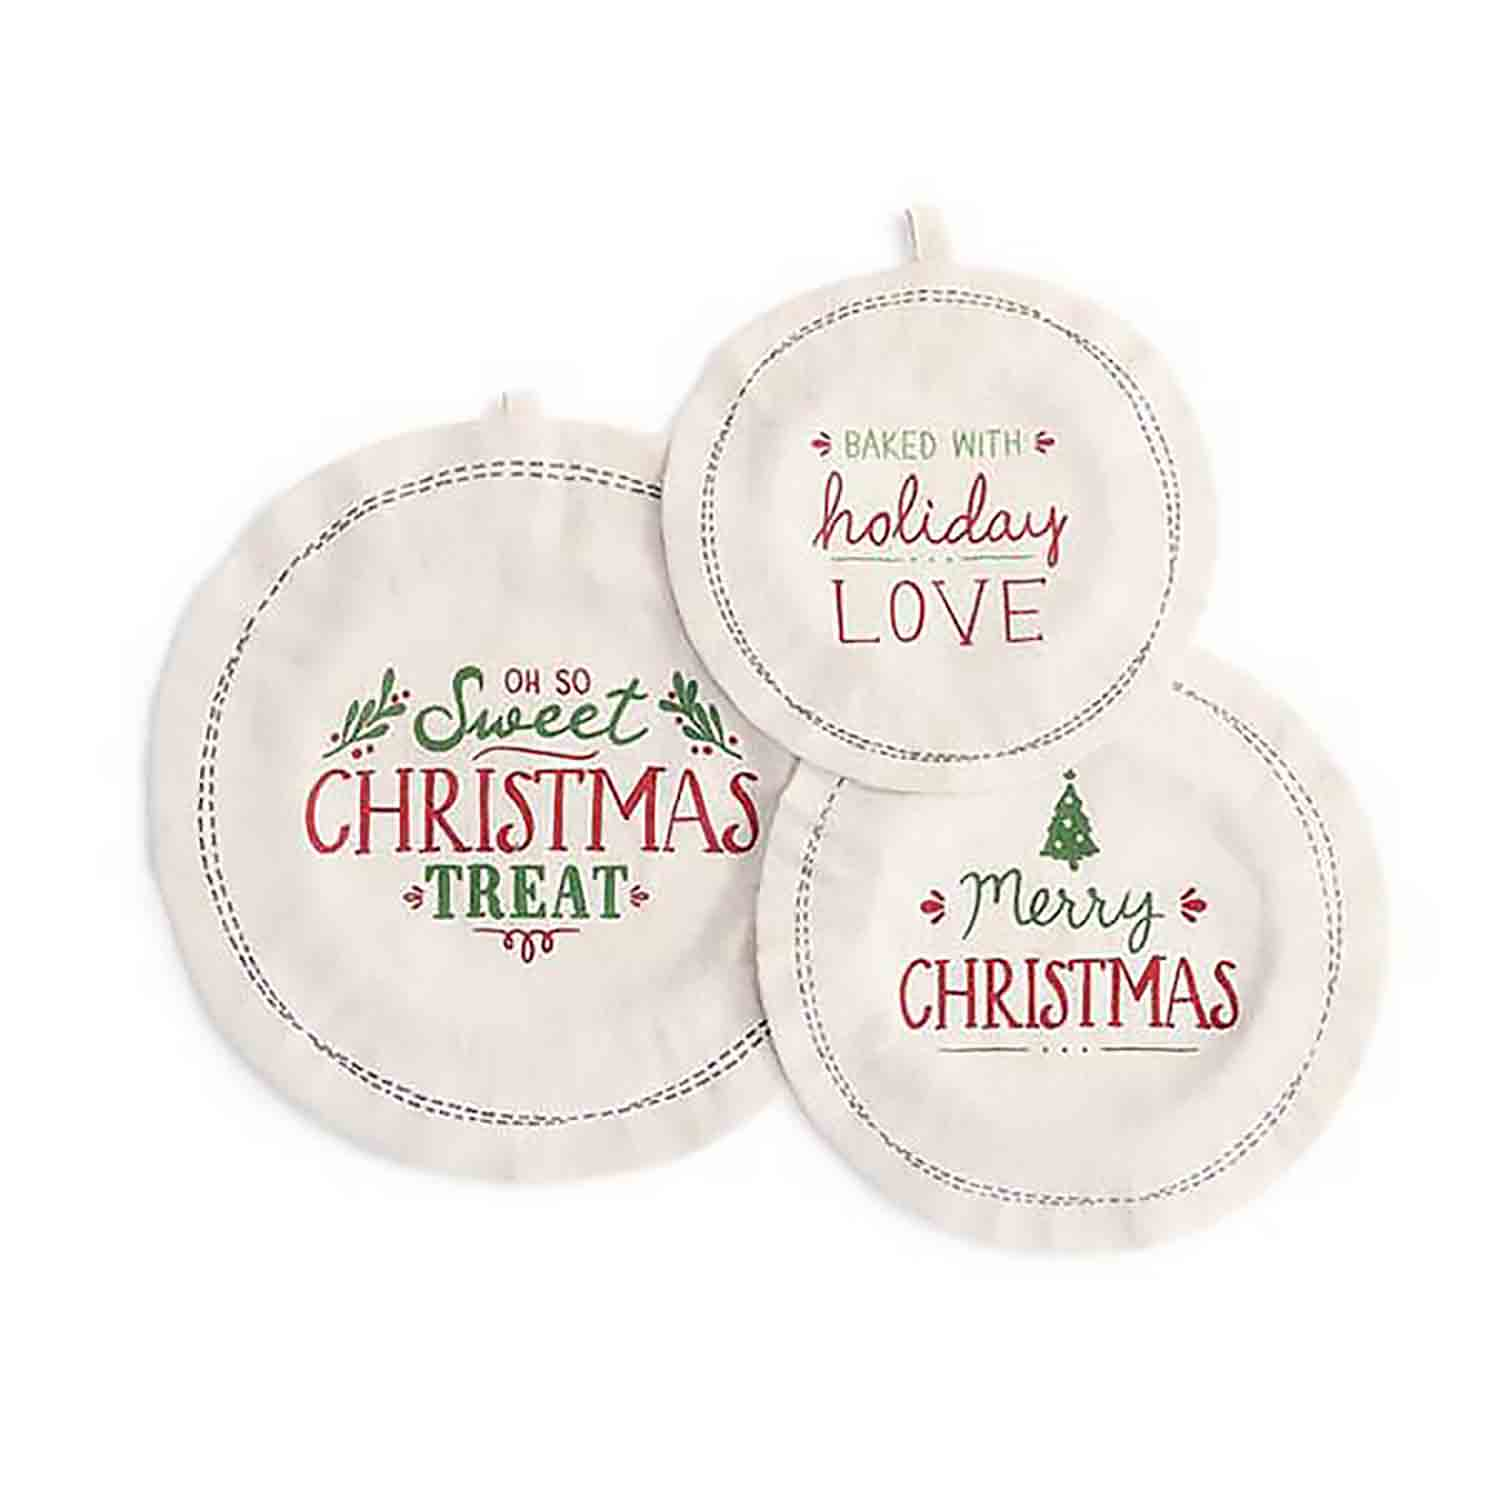 Baked with Holiday Love Dish Covers